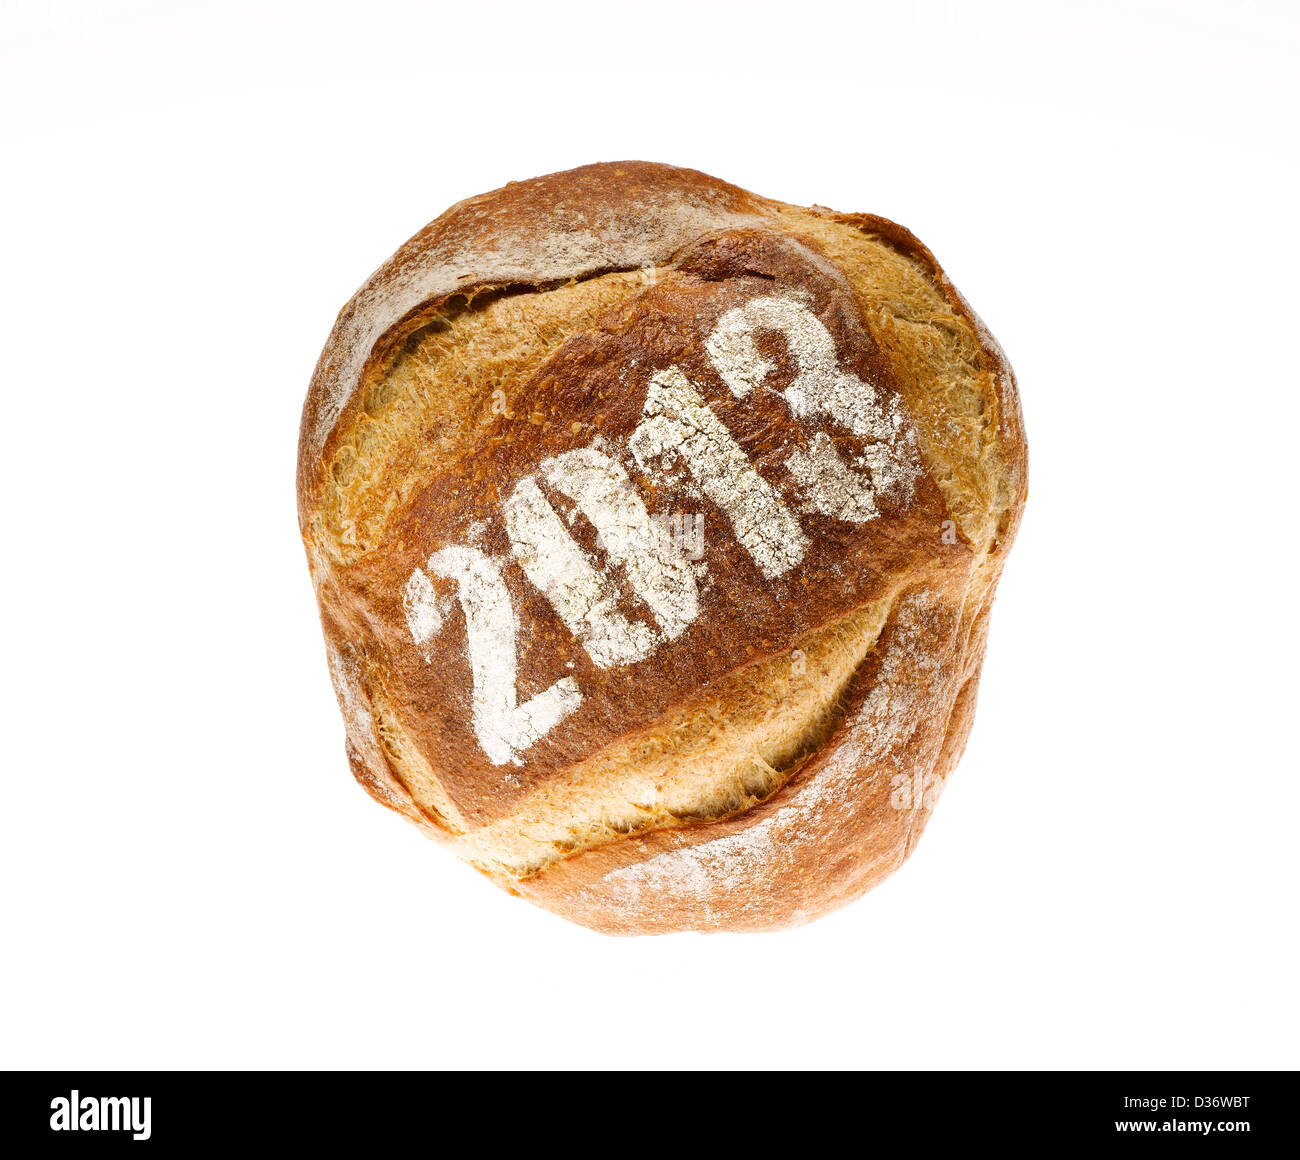 round loaf of bread dusted with the year 2013 - Stock Image